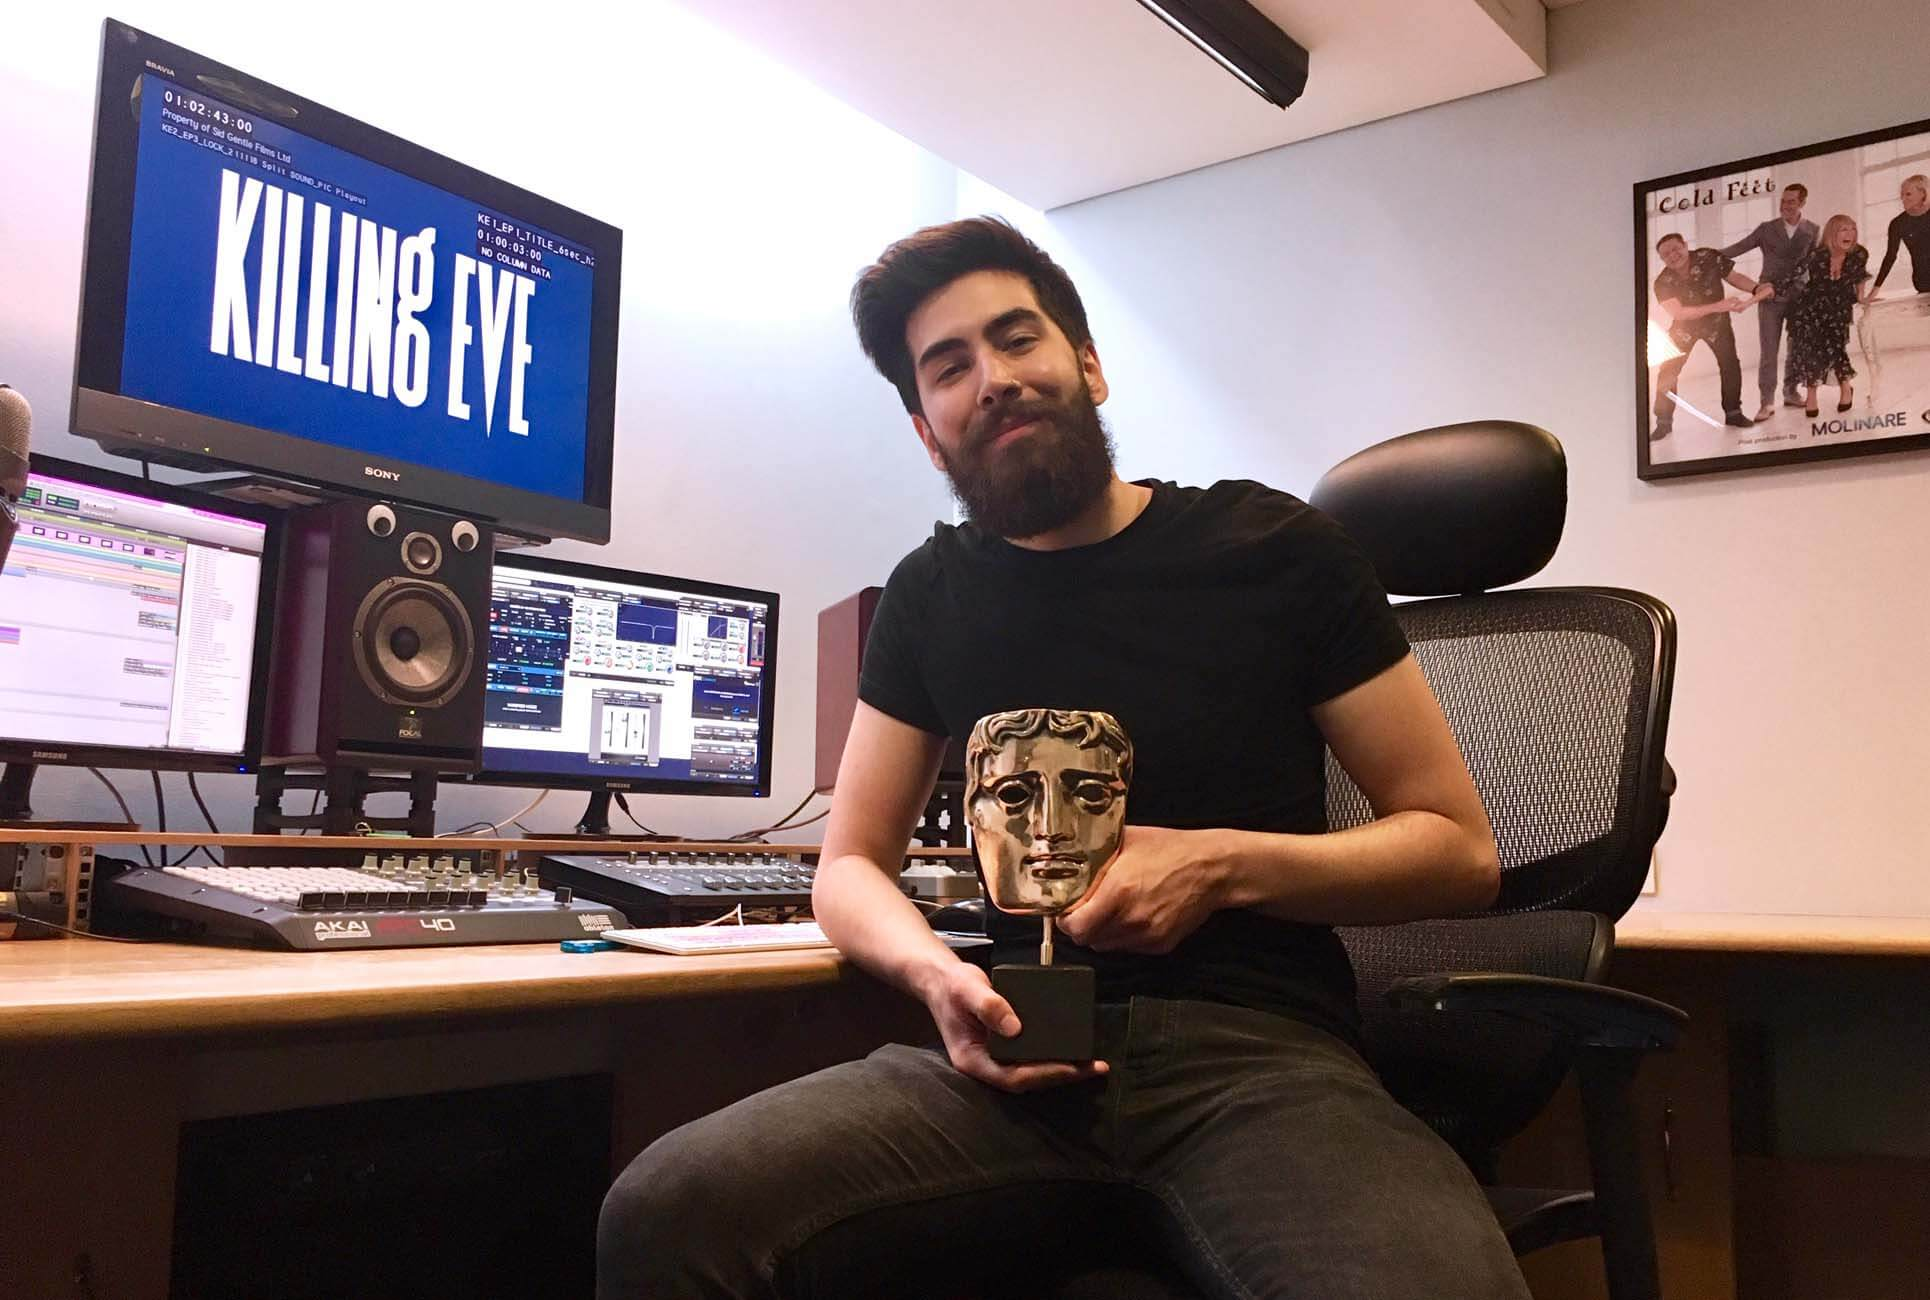 Graduate Alex Gibson with Bafta for Killing Eve